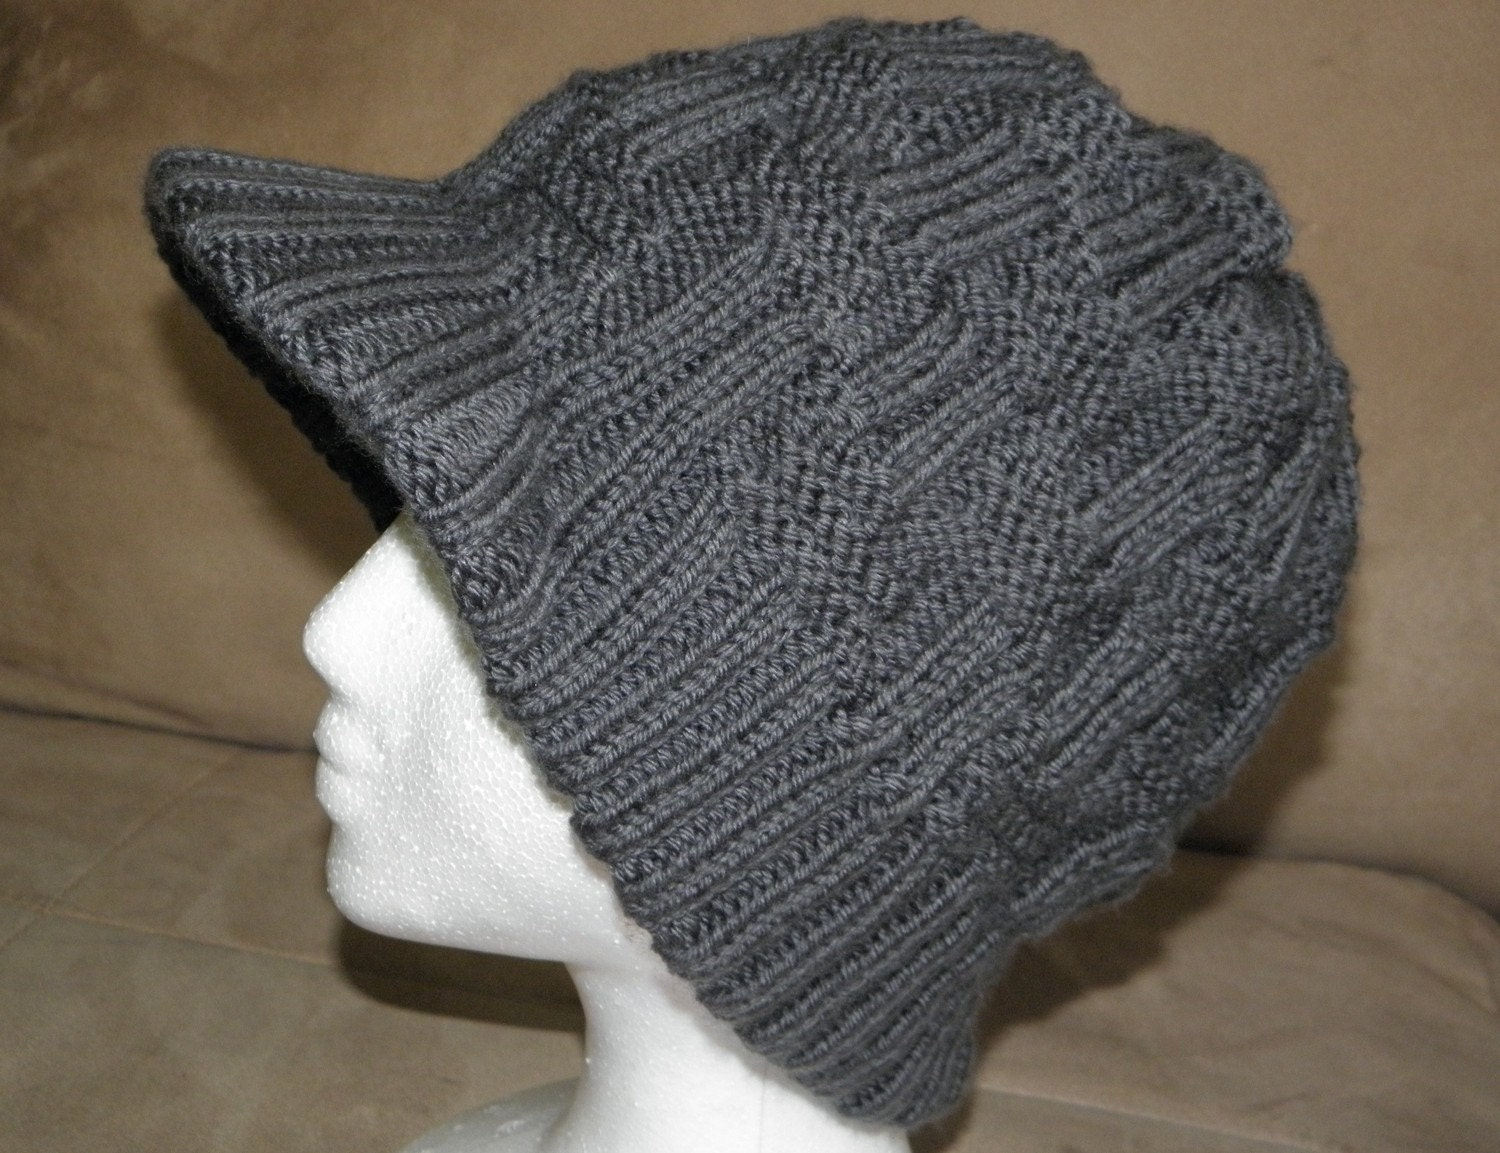 Knitting Patterns Caps : PDF Knitting Pattern Knit Visor Hat / Geometry